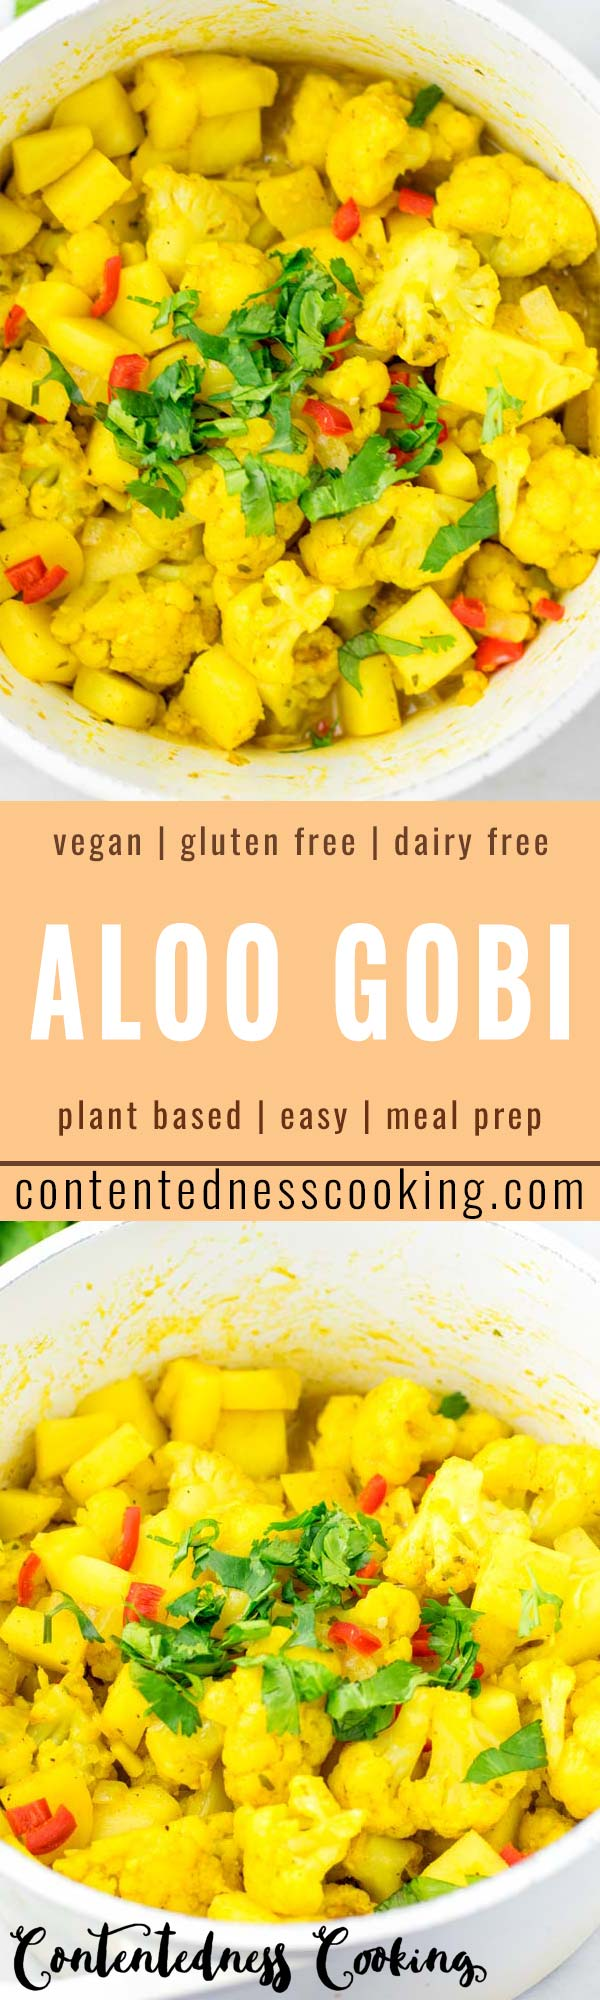 This Aloo Gobi is super easy to make in one pan and packed with so many amazing flavors! Naturally vegan and gluten free it is a keeper for everybody for dinner, lunch, meal prep and so much more. #vegan #dairyfree #glutenfree #vegetarian #onepotmeals #budgetmeals #aloogobi #dinner #lunch #mealprep #worklunchdeas #contentednesscooking